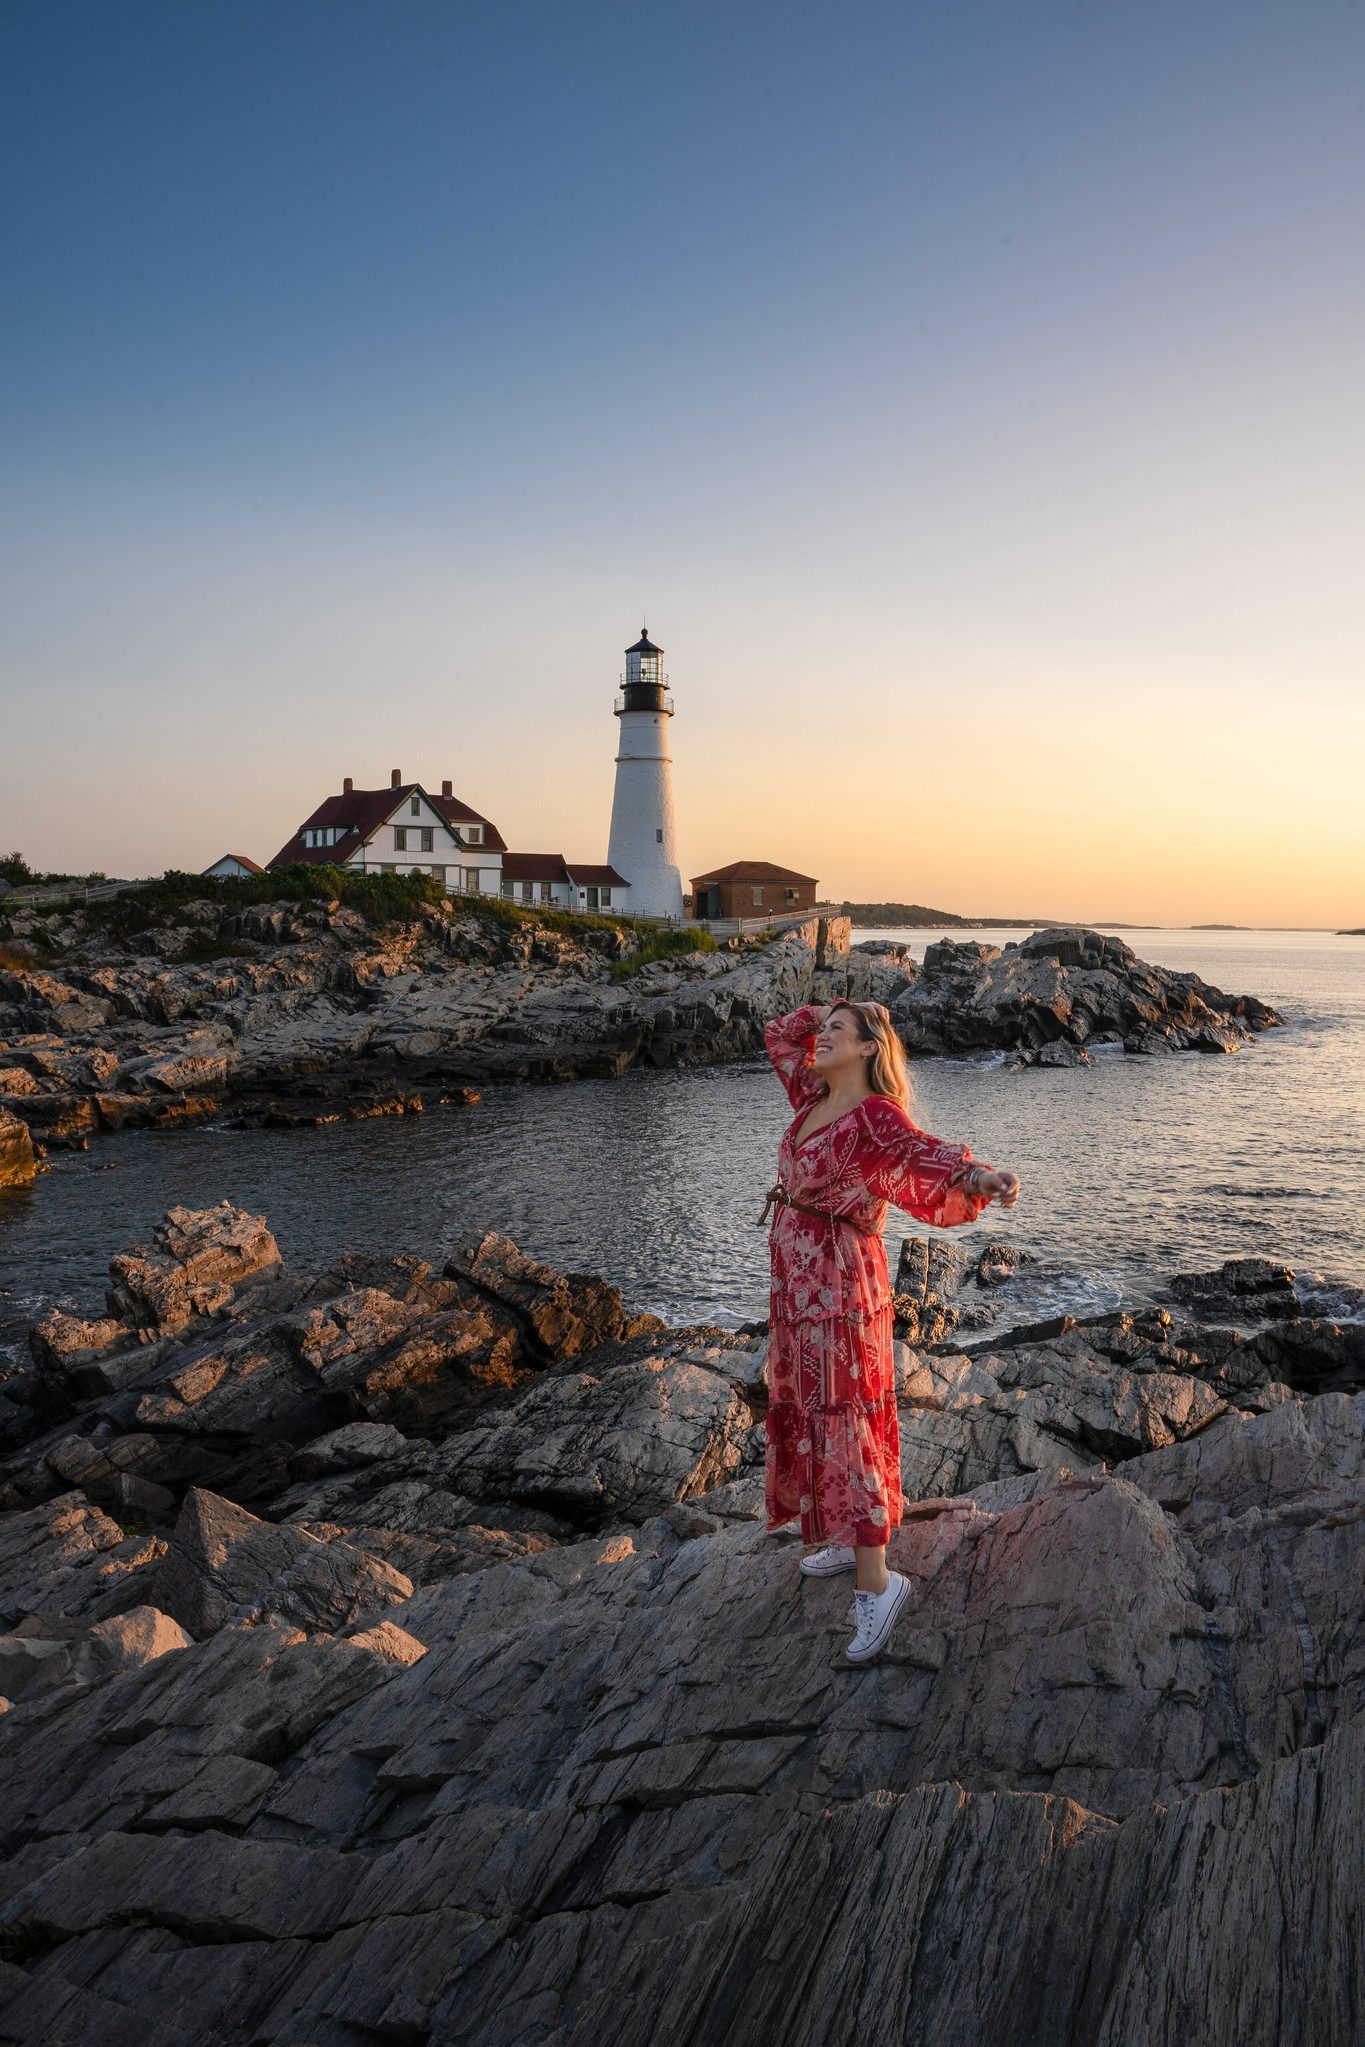 Sunrise at Portland Head Light | Fort Willaims Park | Best Things to Do in Portland Maine | 2 Days in Portland Maine | 48 Hours in Portland Maine | The Perfect Weekend in Maine | Explore Portland, ME | Weekend in Portland, ME | Portland Travel Guide | Things to Do & Where to Stay | Top Things to do in Portland